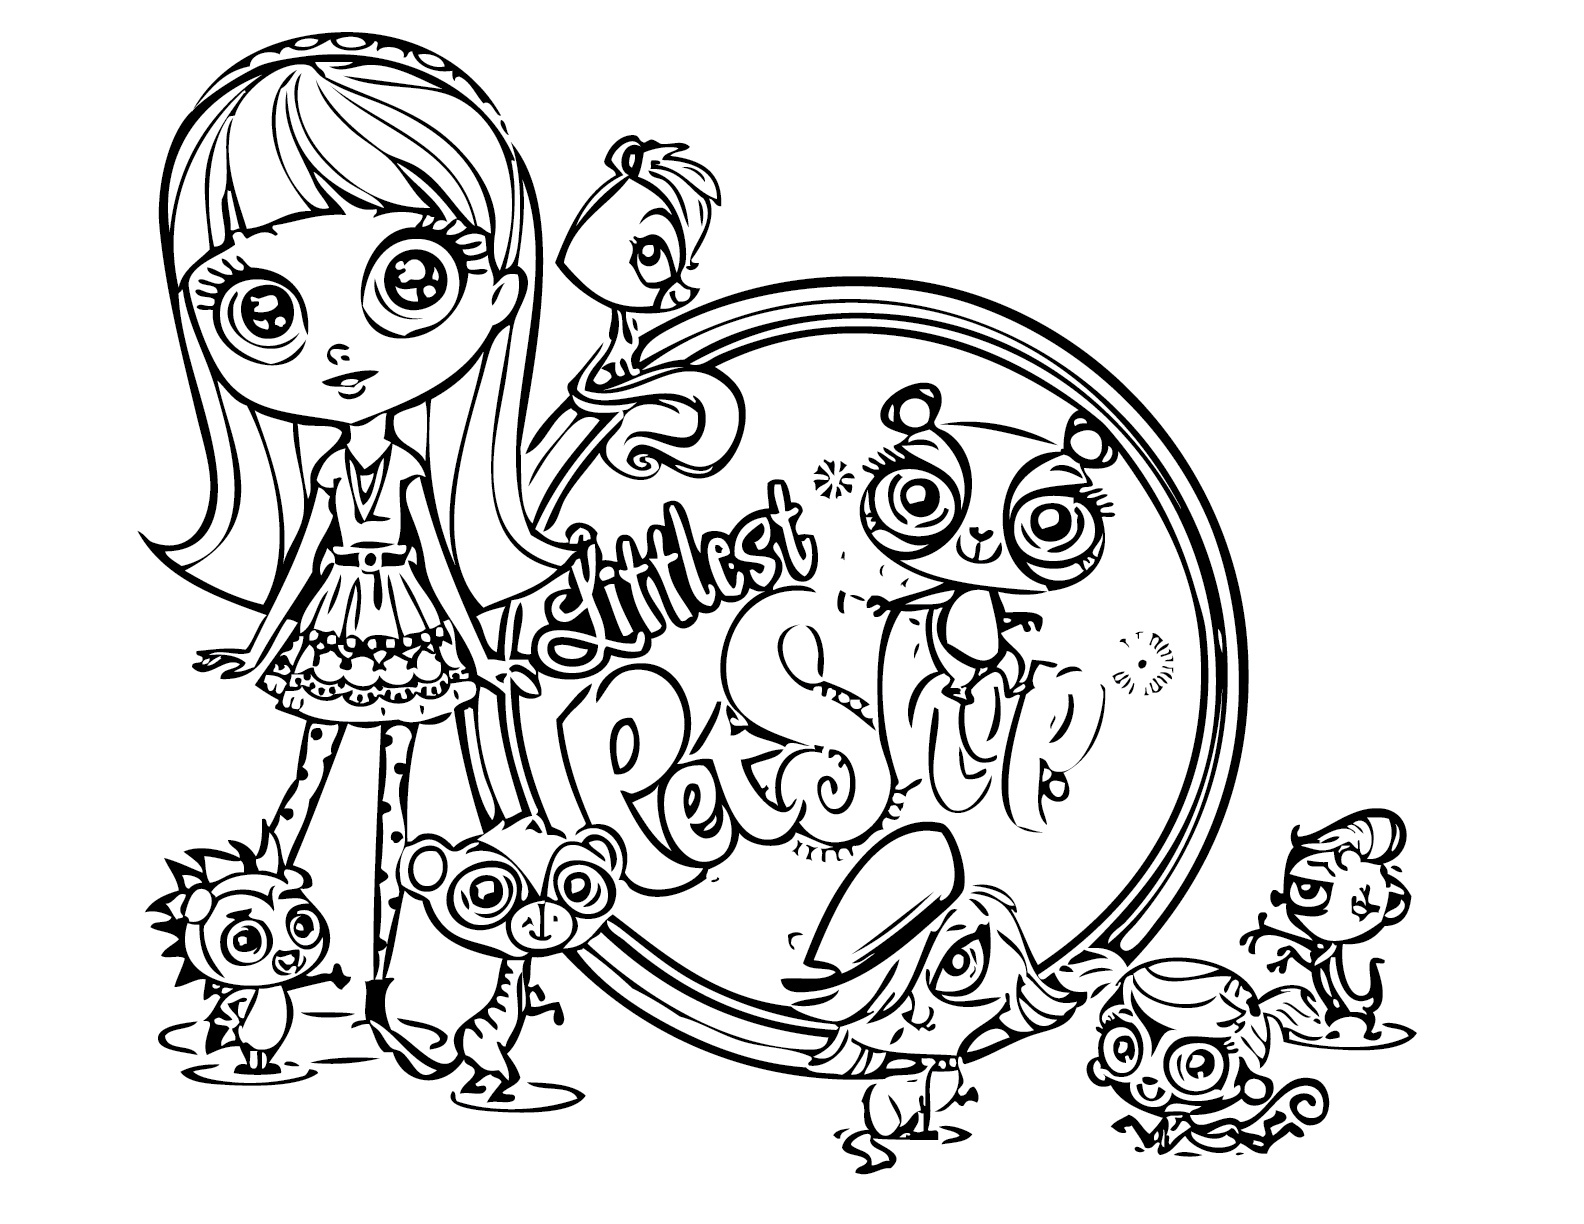 Littlest Pet Shop Coloring Pages - Best Coloring Pages For Kids - Littlest Pet Shop Free Printable Coloring Pages